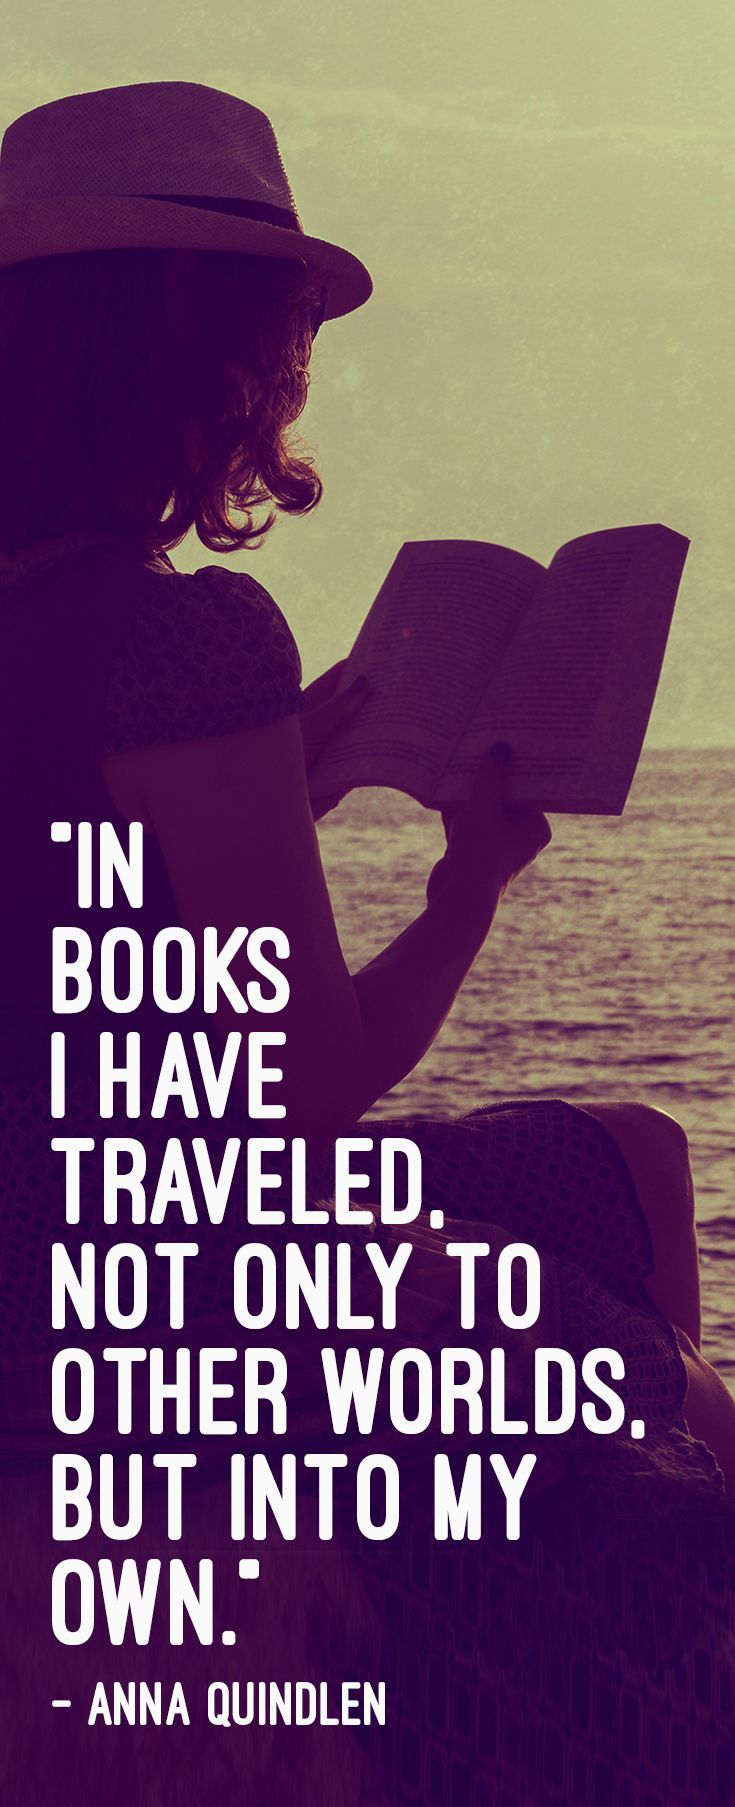 21 Bookish Quotes for a Rainy Day